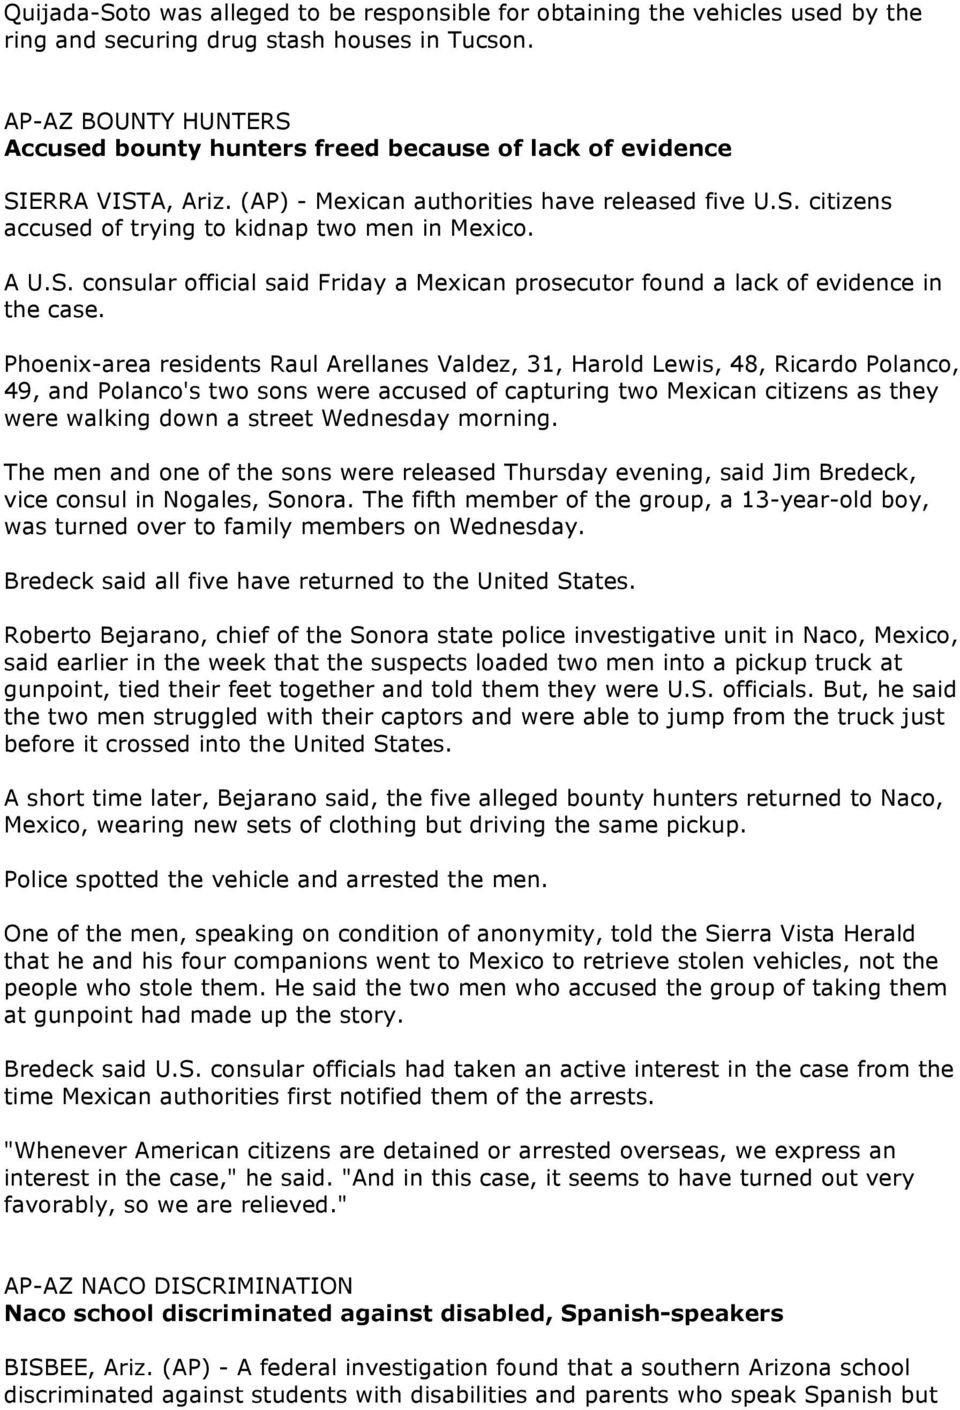 A U.S. consular official said Friday a Mexican prosecutor found a lack of evidence in the case.